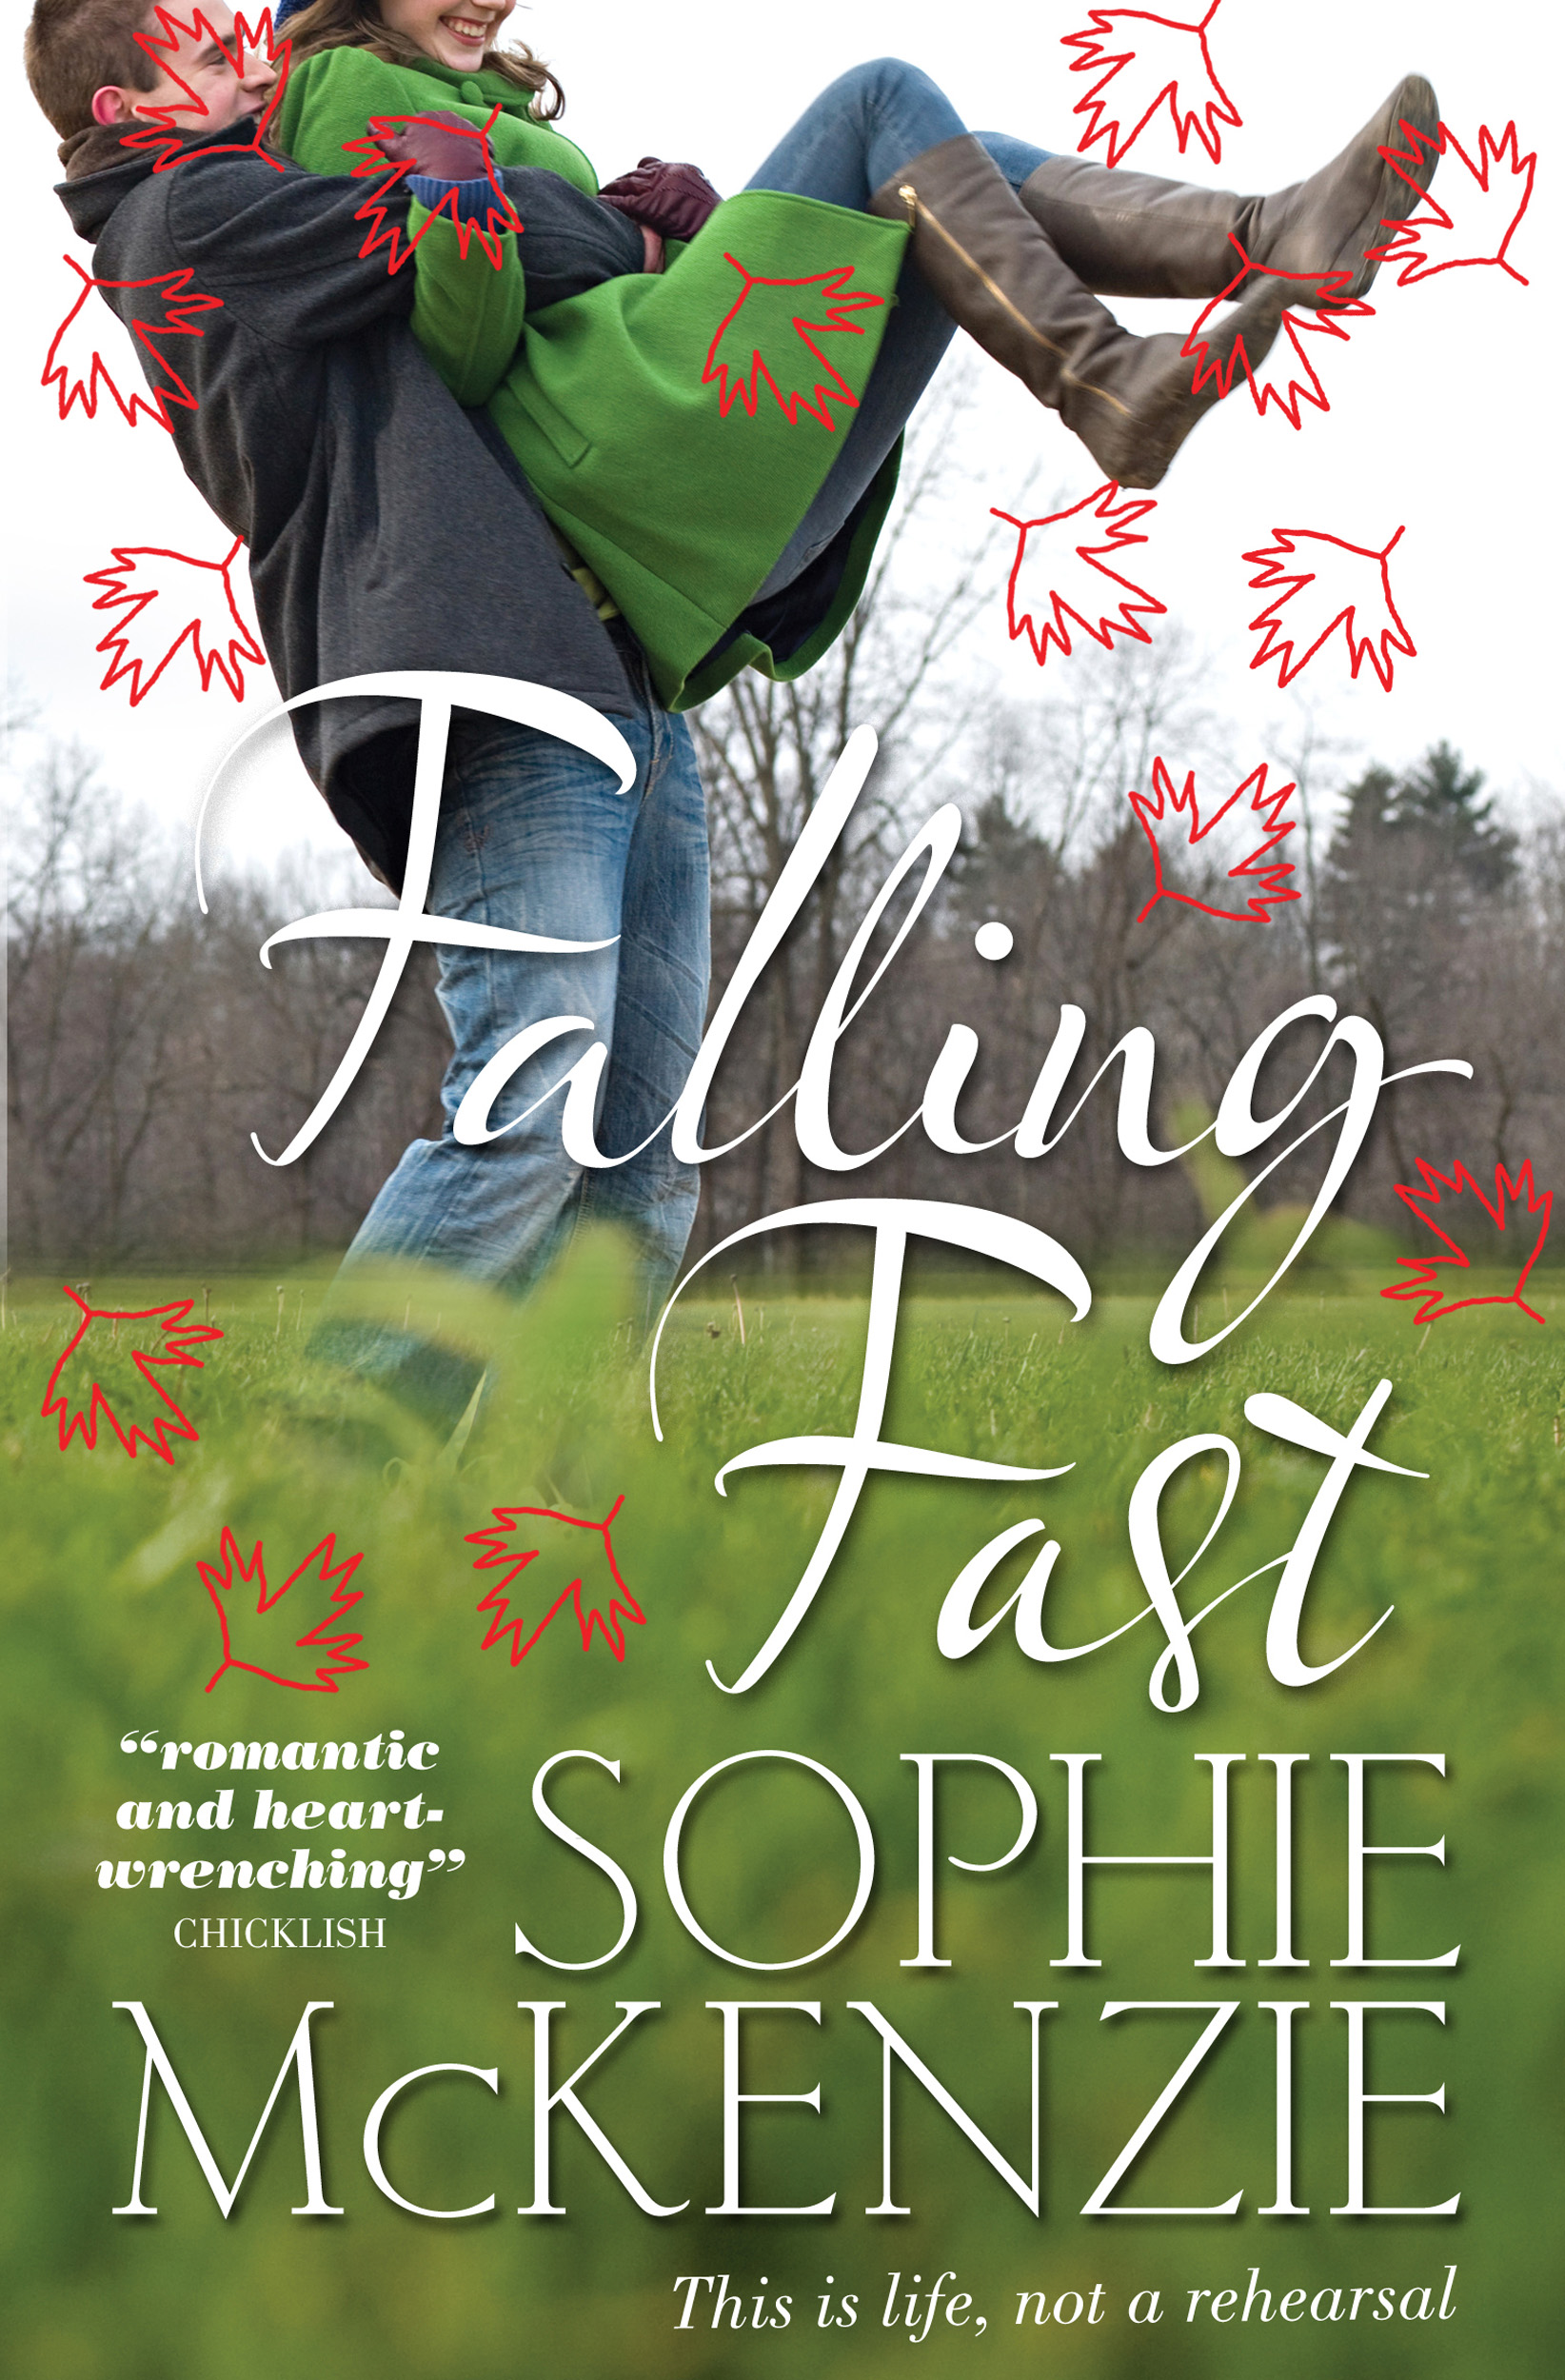 Falling fast book by sophie mckenzie official publisher page cvr9780857070999 9780857070999 hr fandeluxe Choice Image